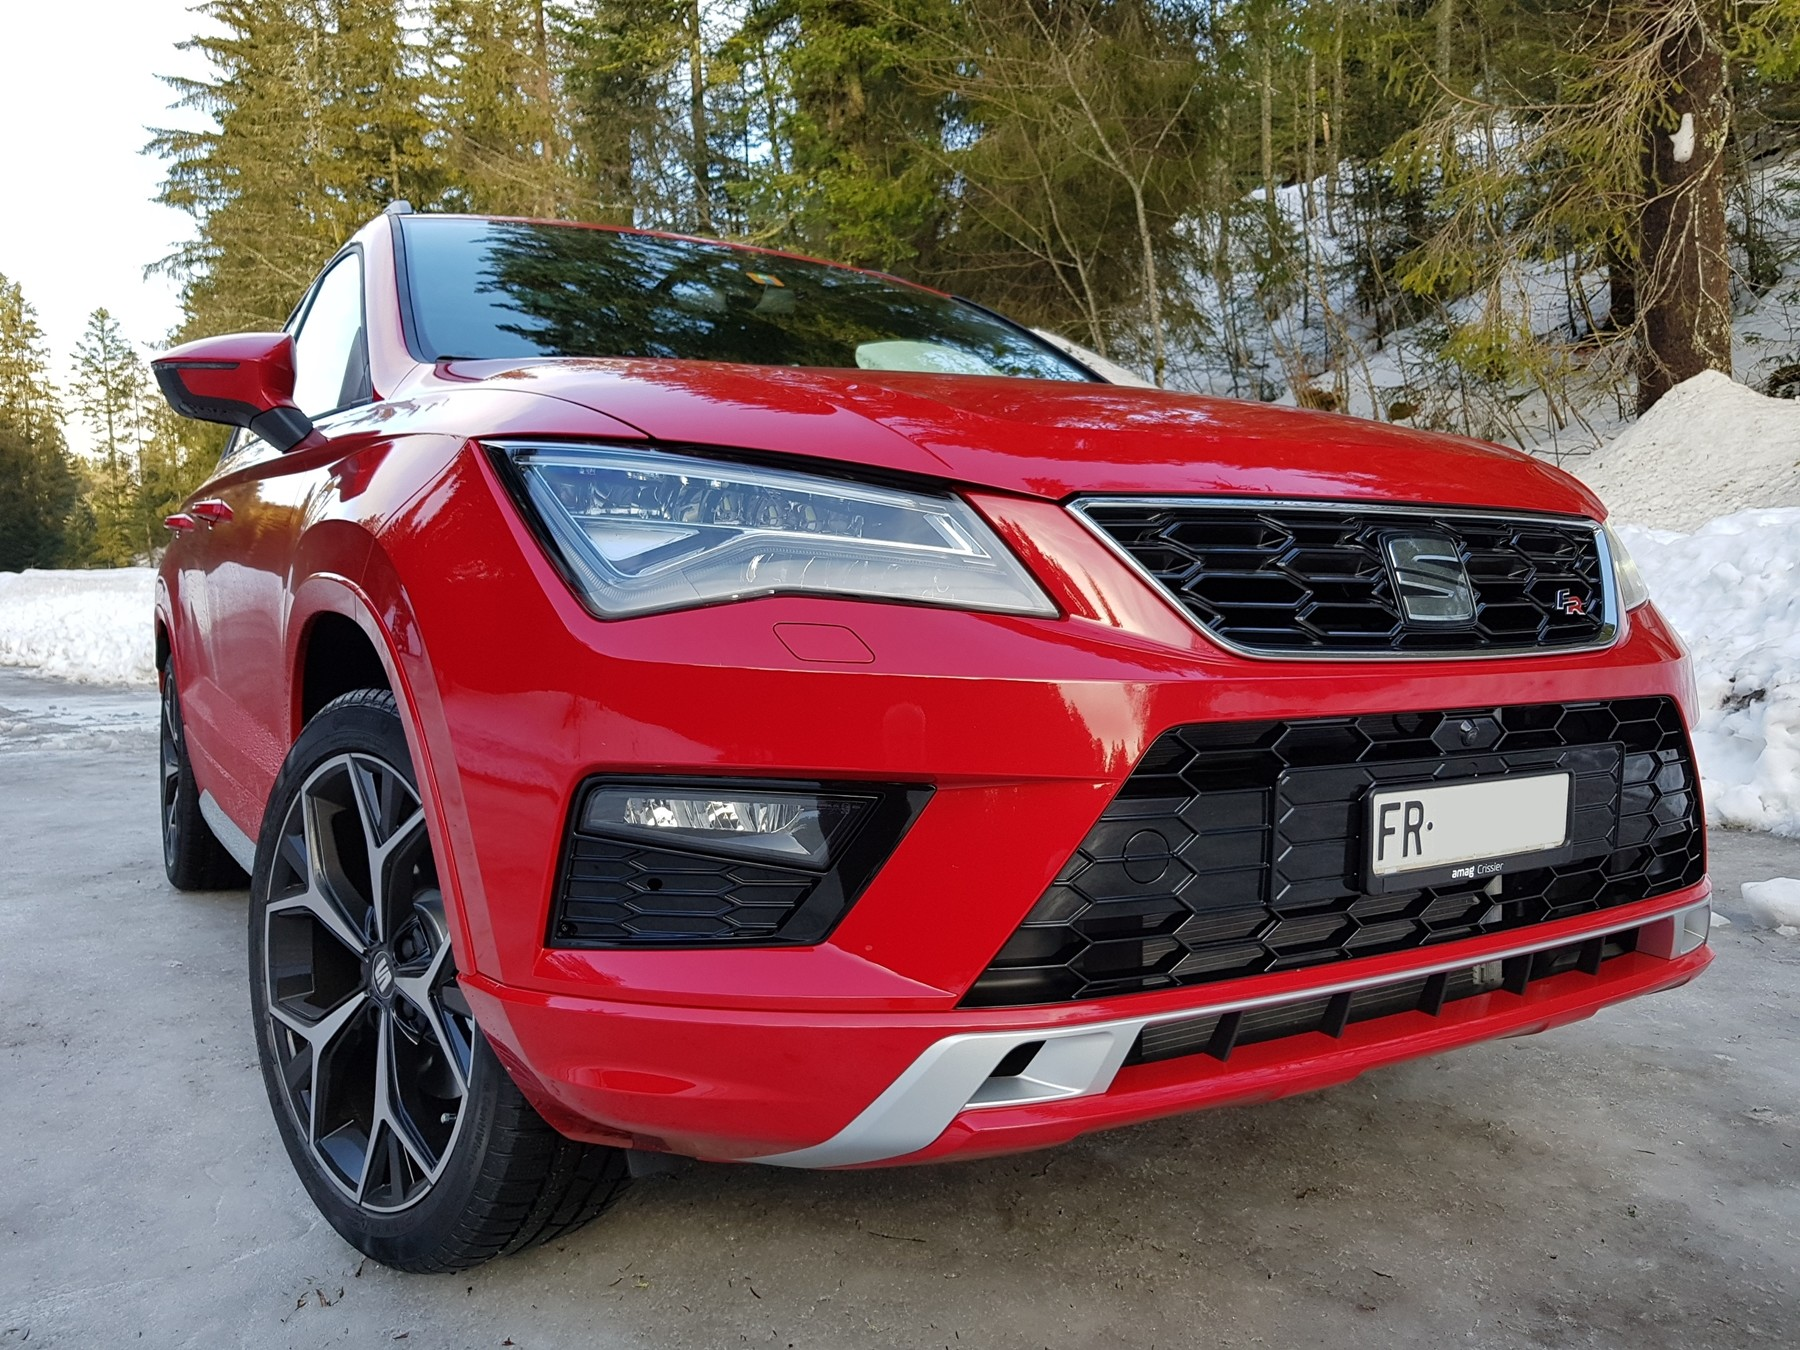 ateca fr 2 0 tsi 190 dsg 4drive 2018 rouge velvet pr sentation ateca seat forum marques. Black Bedroom Furniture Sets. Home Design Ideas